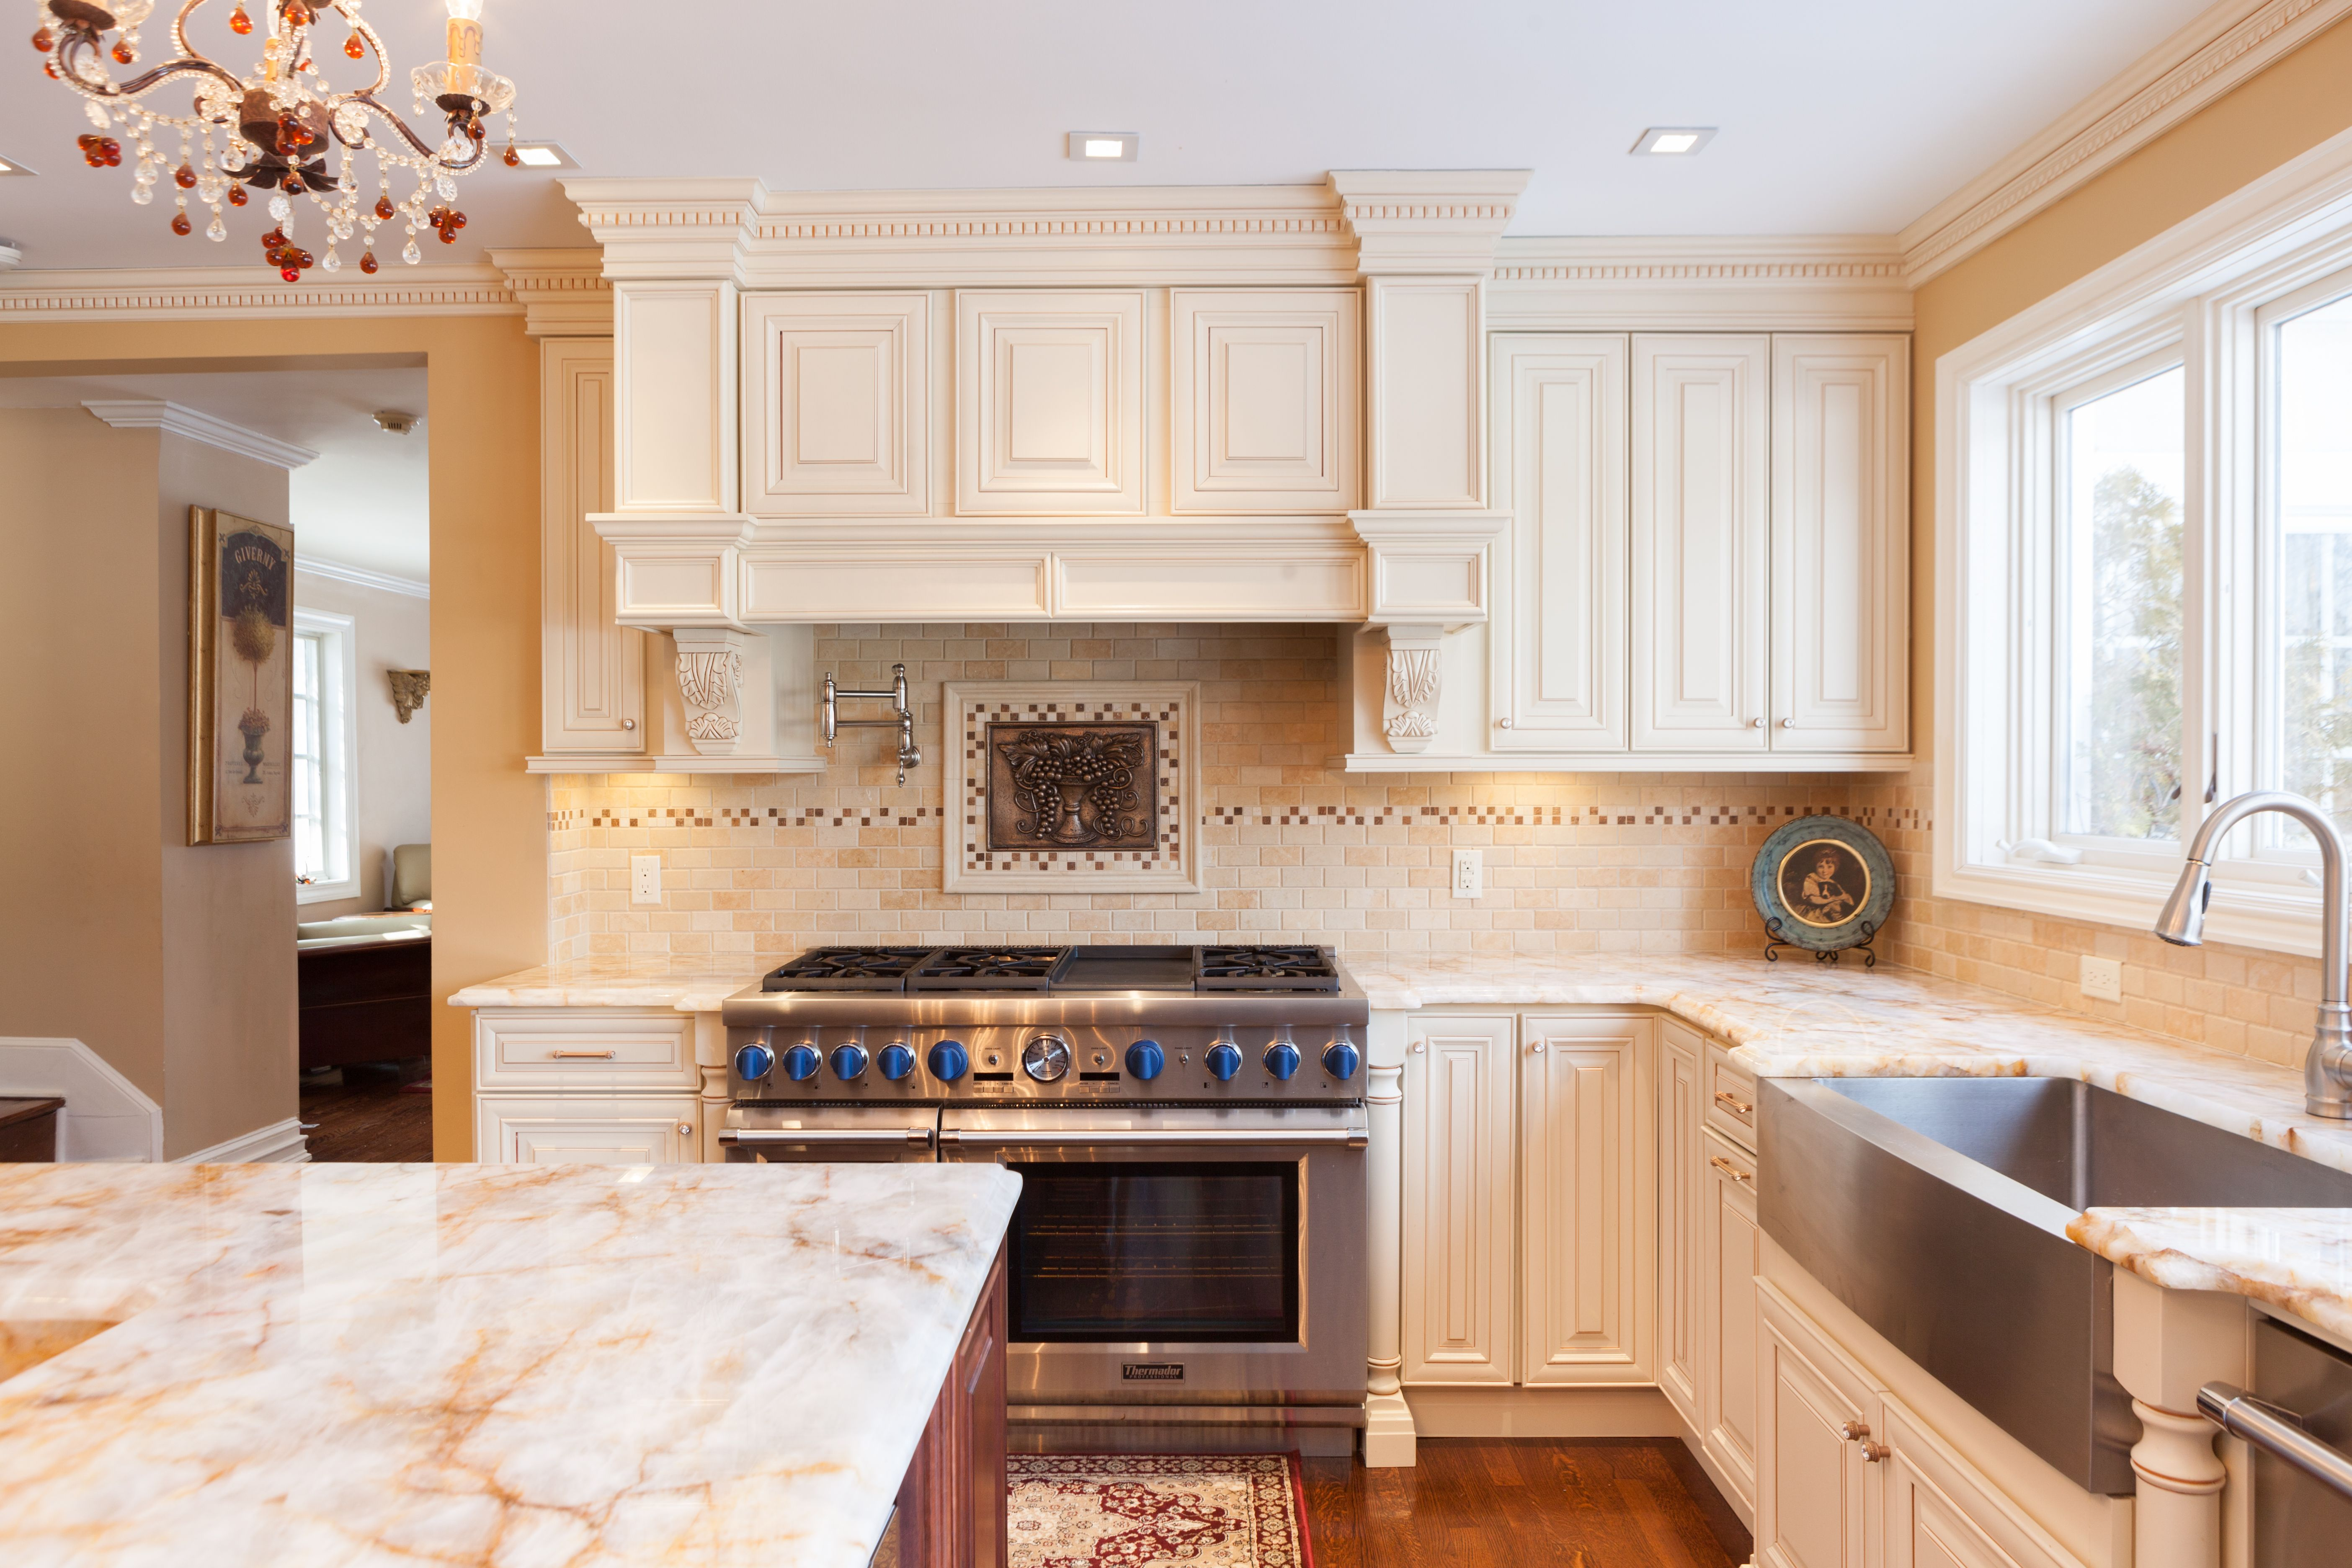 J&K Cabinetry Traditional cabinets made from Maple Wood in a Creme ...